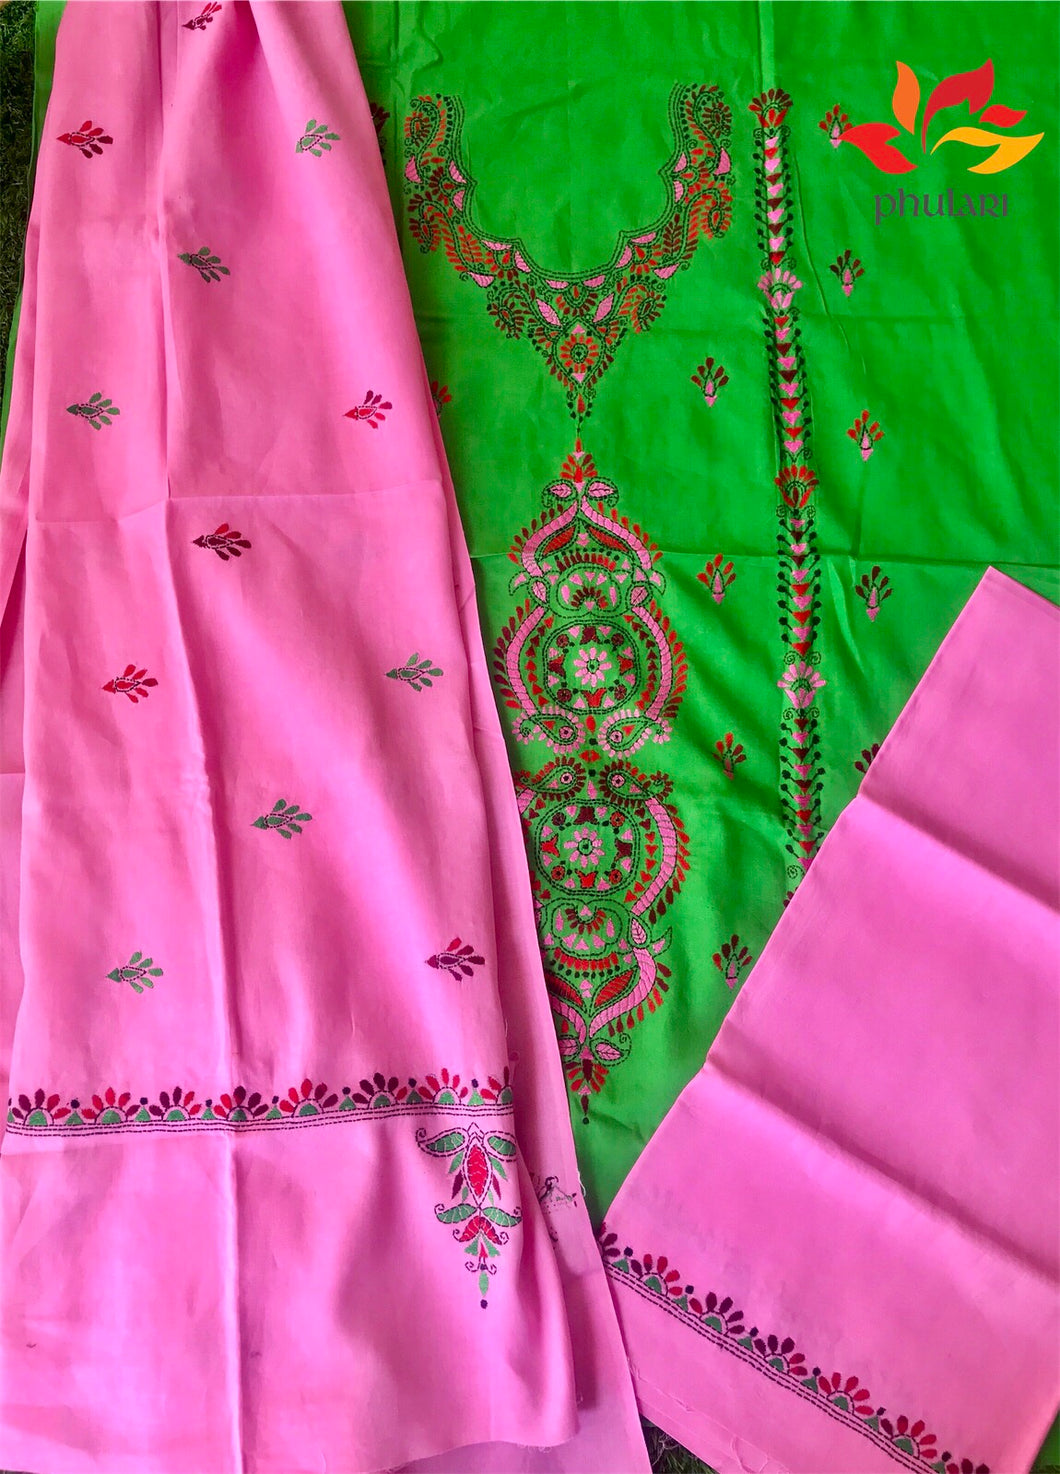 Kantha Work Suit Unstitched Fabric Cotton - Green Pink - Phulari